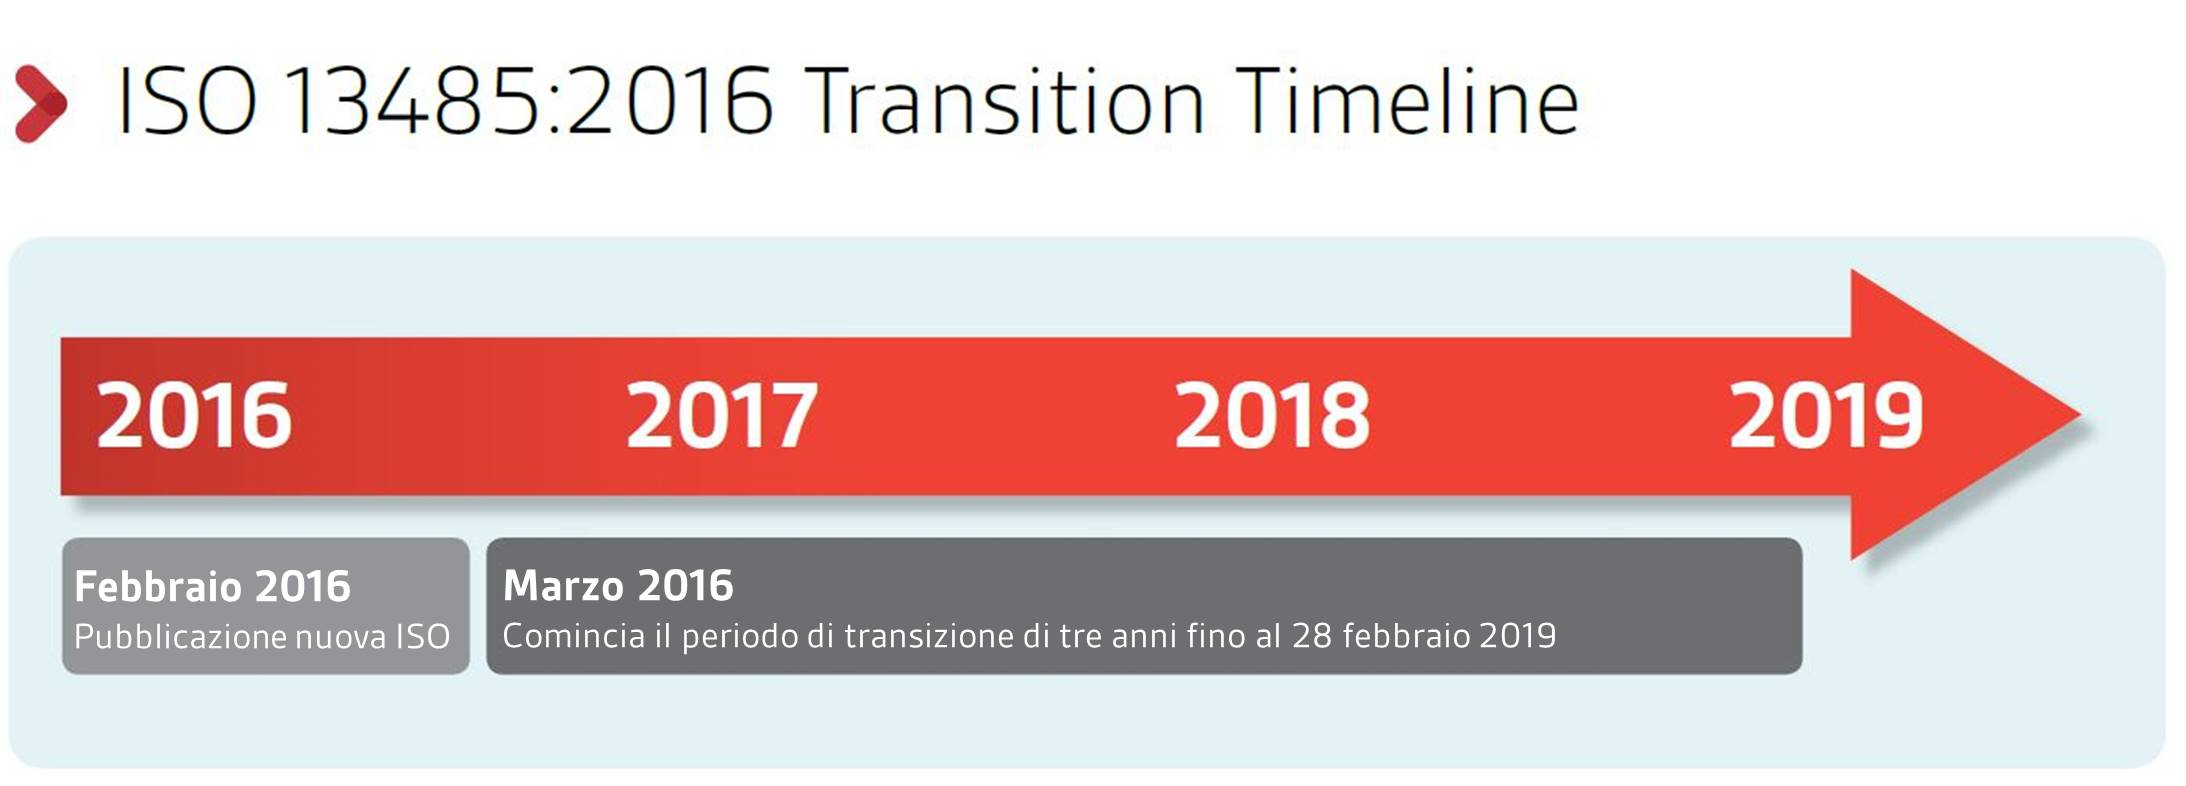 ISO 13485:2016 timeline